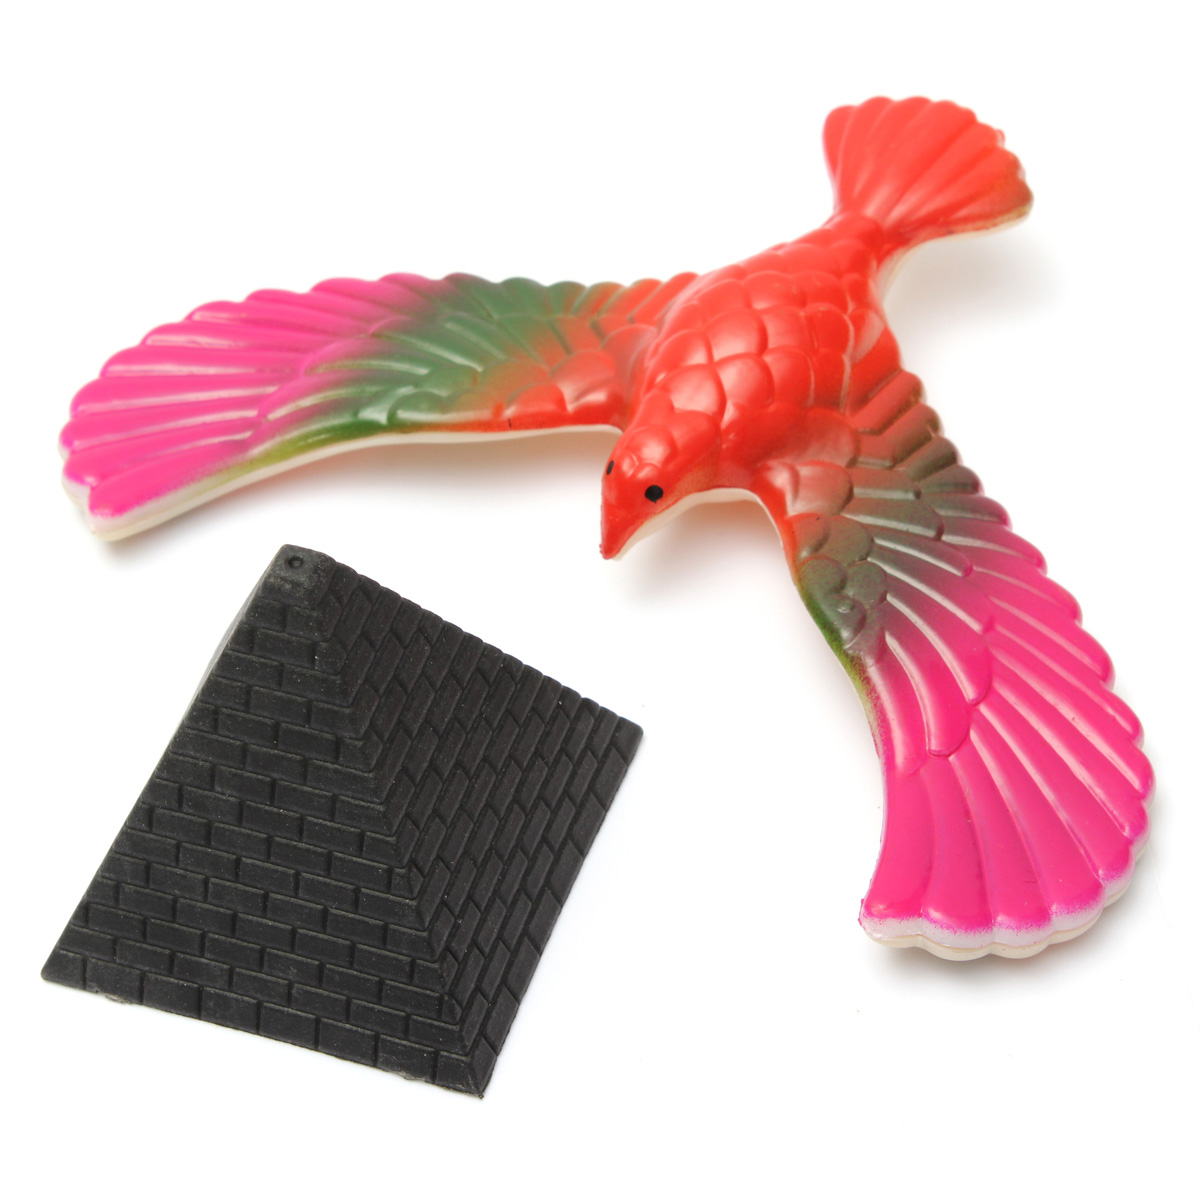 Magic Balancing Bird Science Desk Toy Novelty Fun Learning Gag Gift